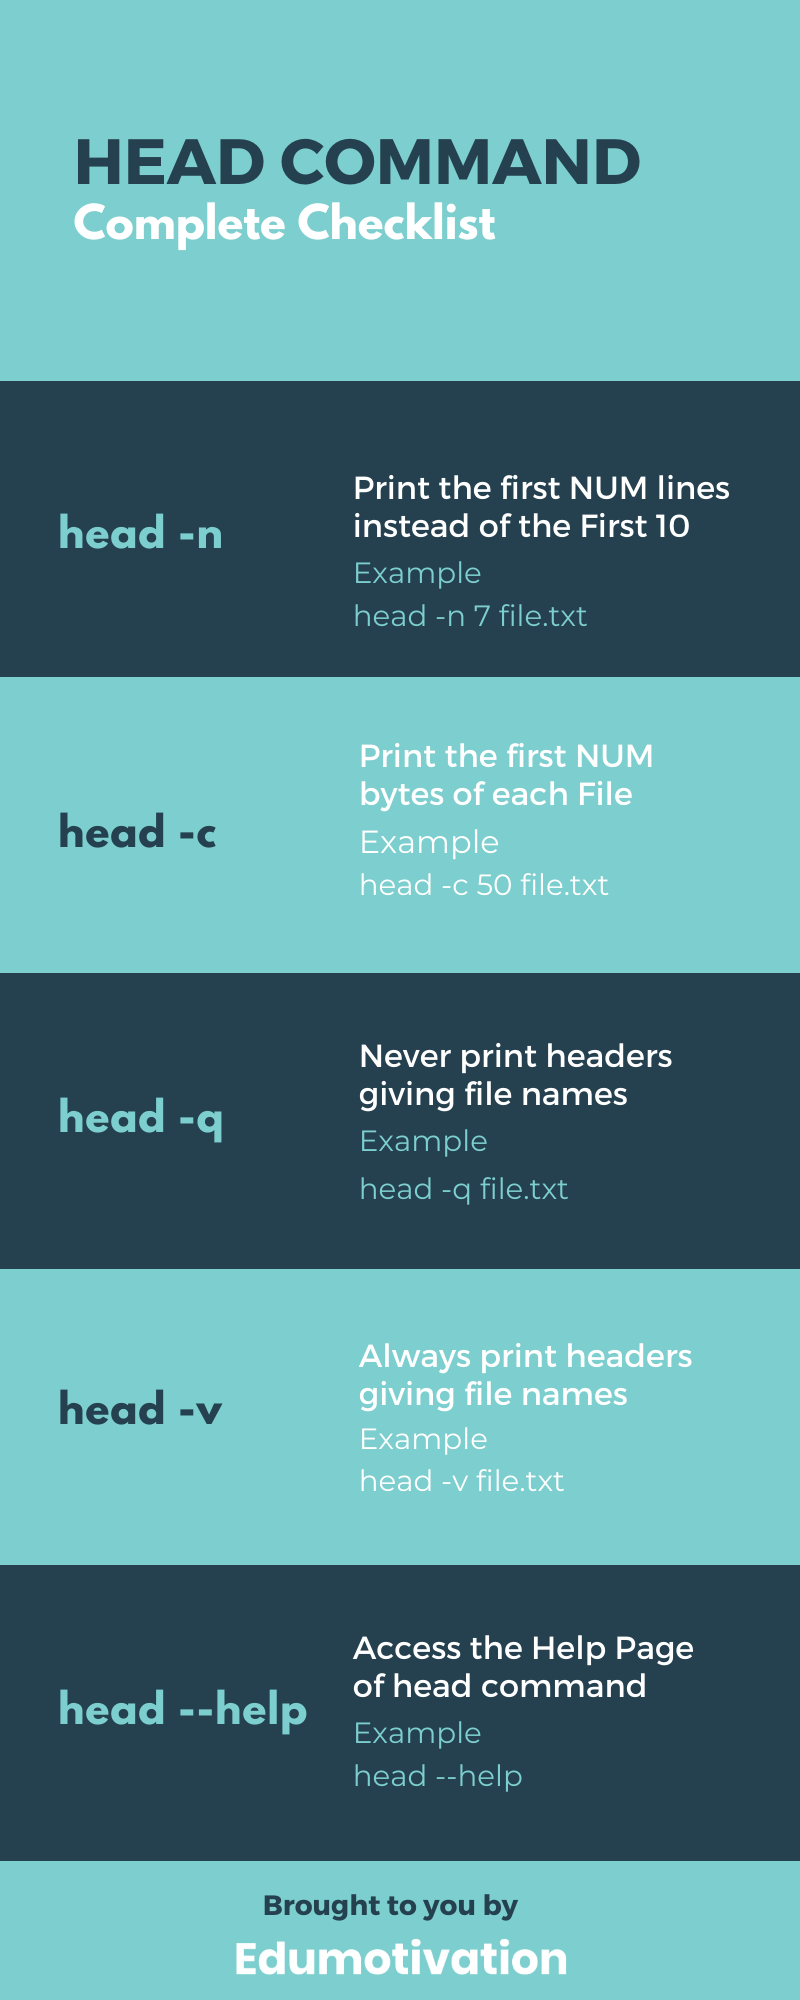 Head command Infographic